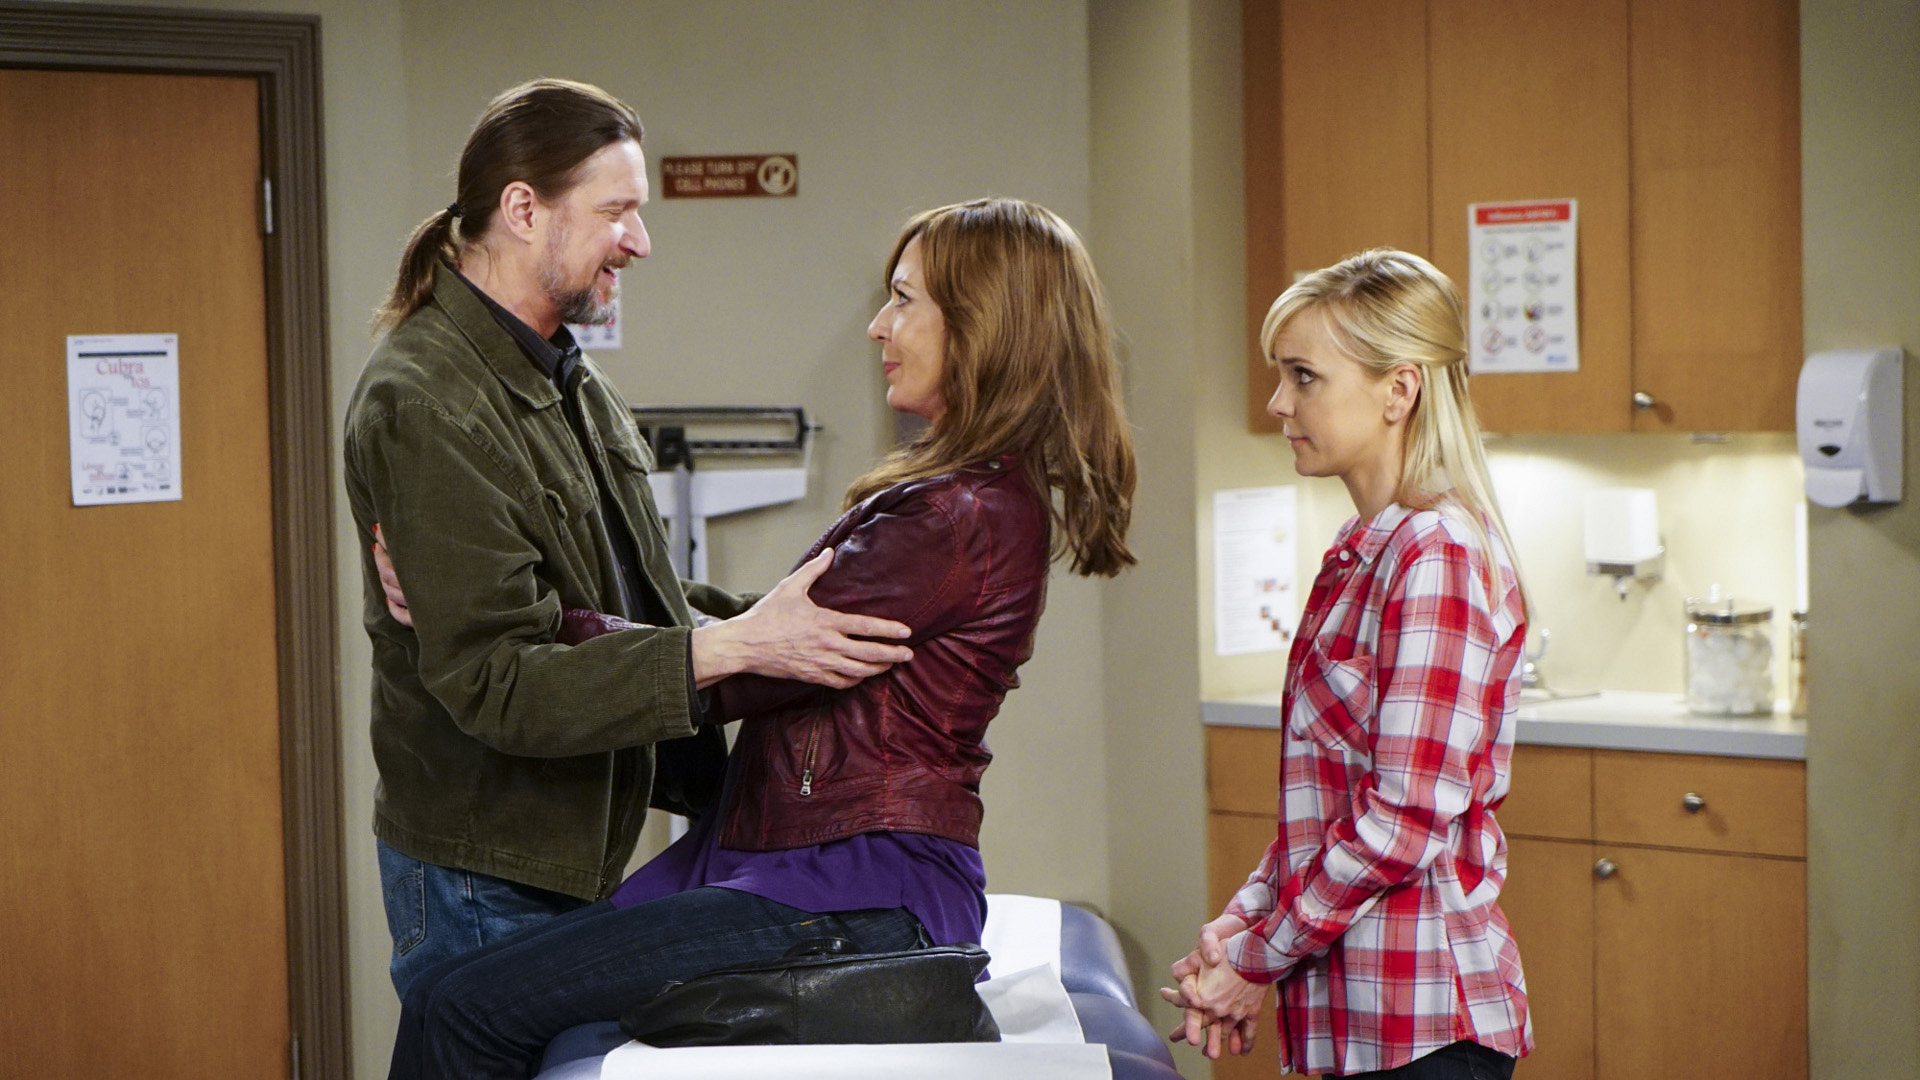 Steve joins Bonnie and Christy in the doctor's office.